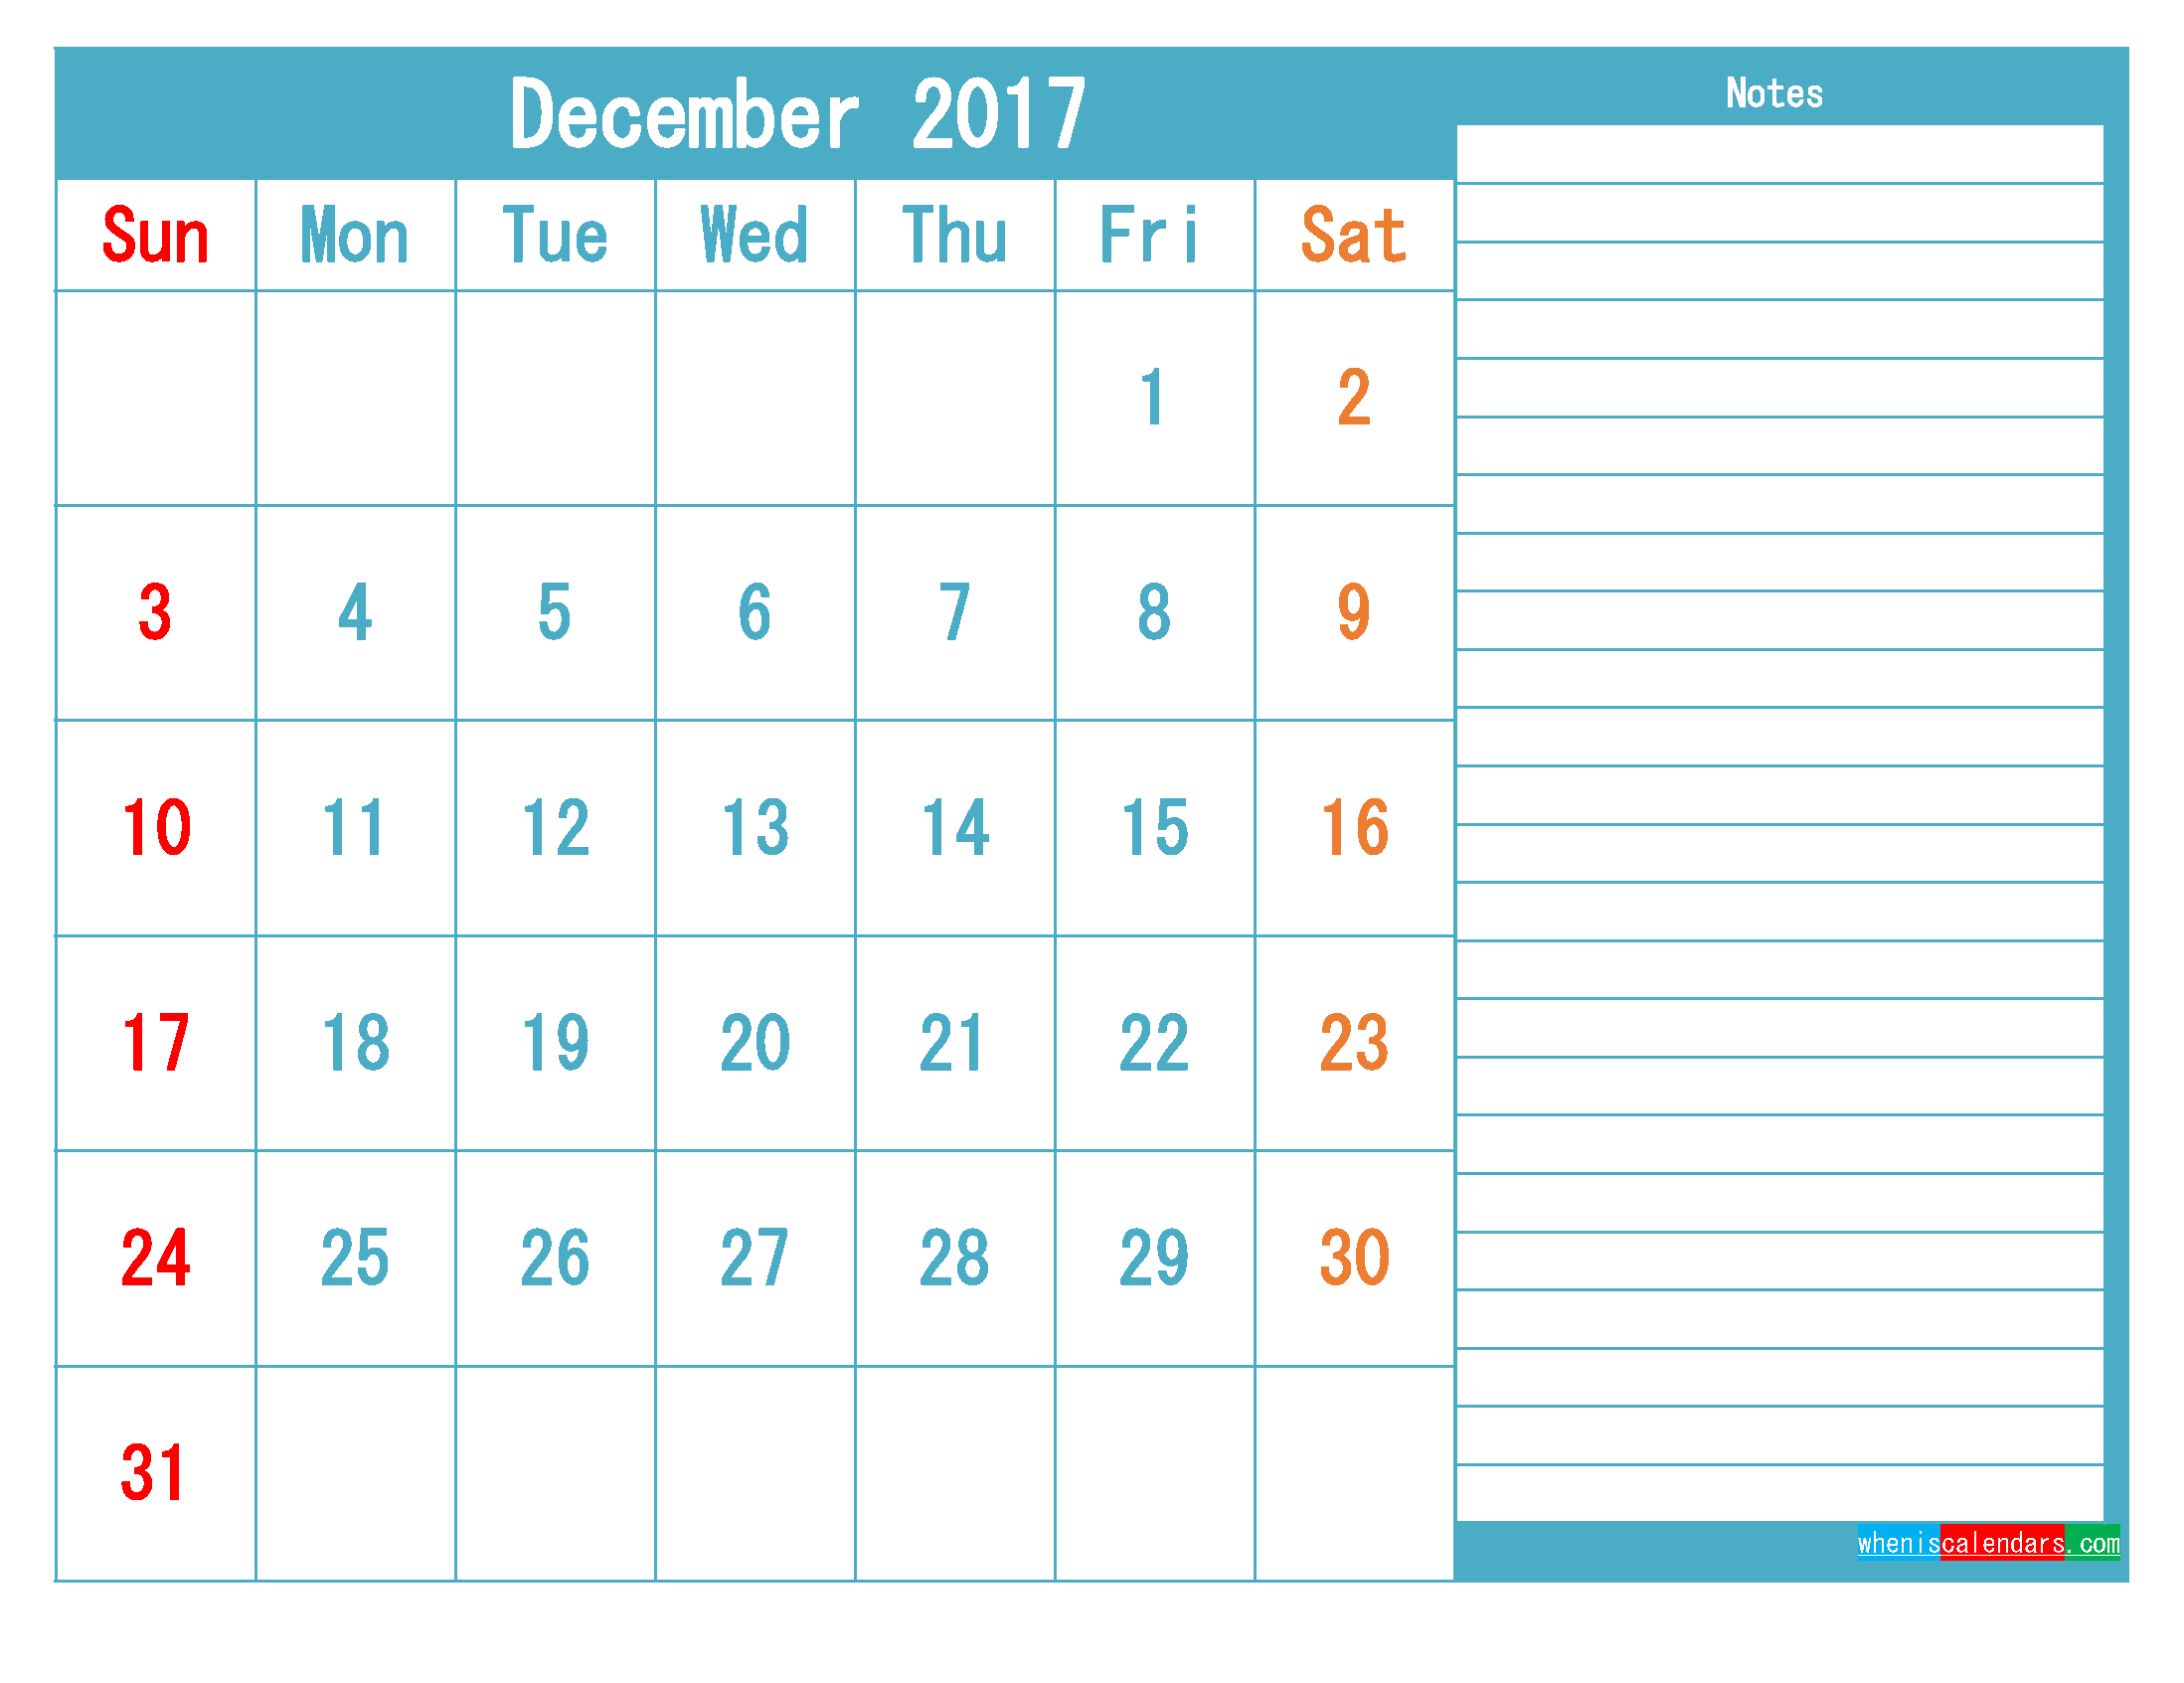 December 2017 Printable Calendar Templates PDF and Image